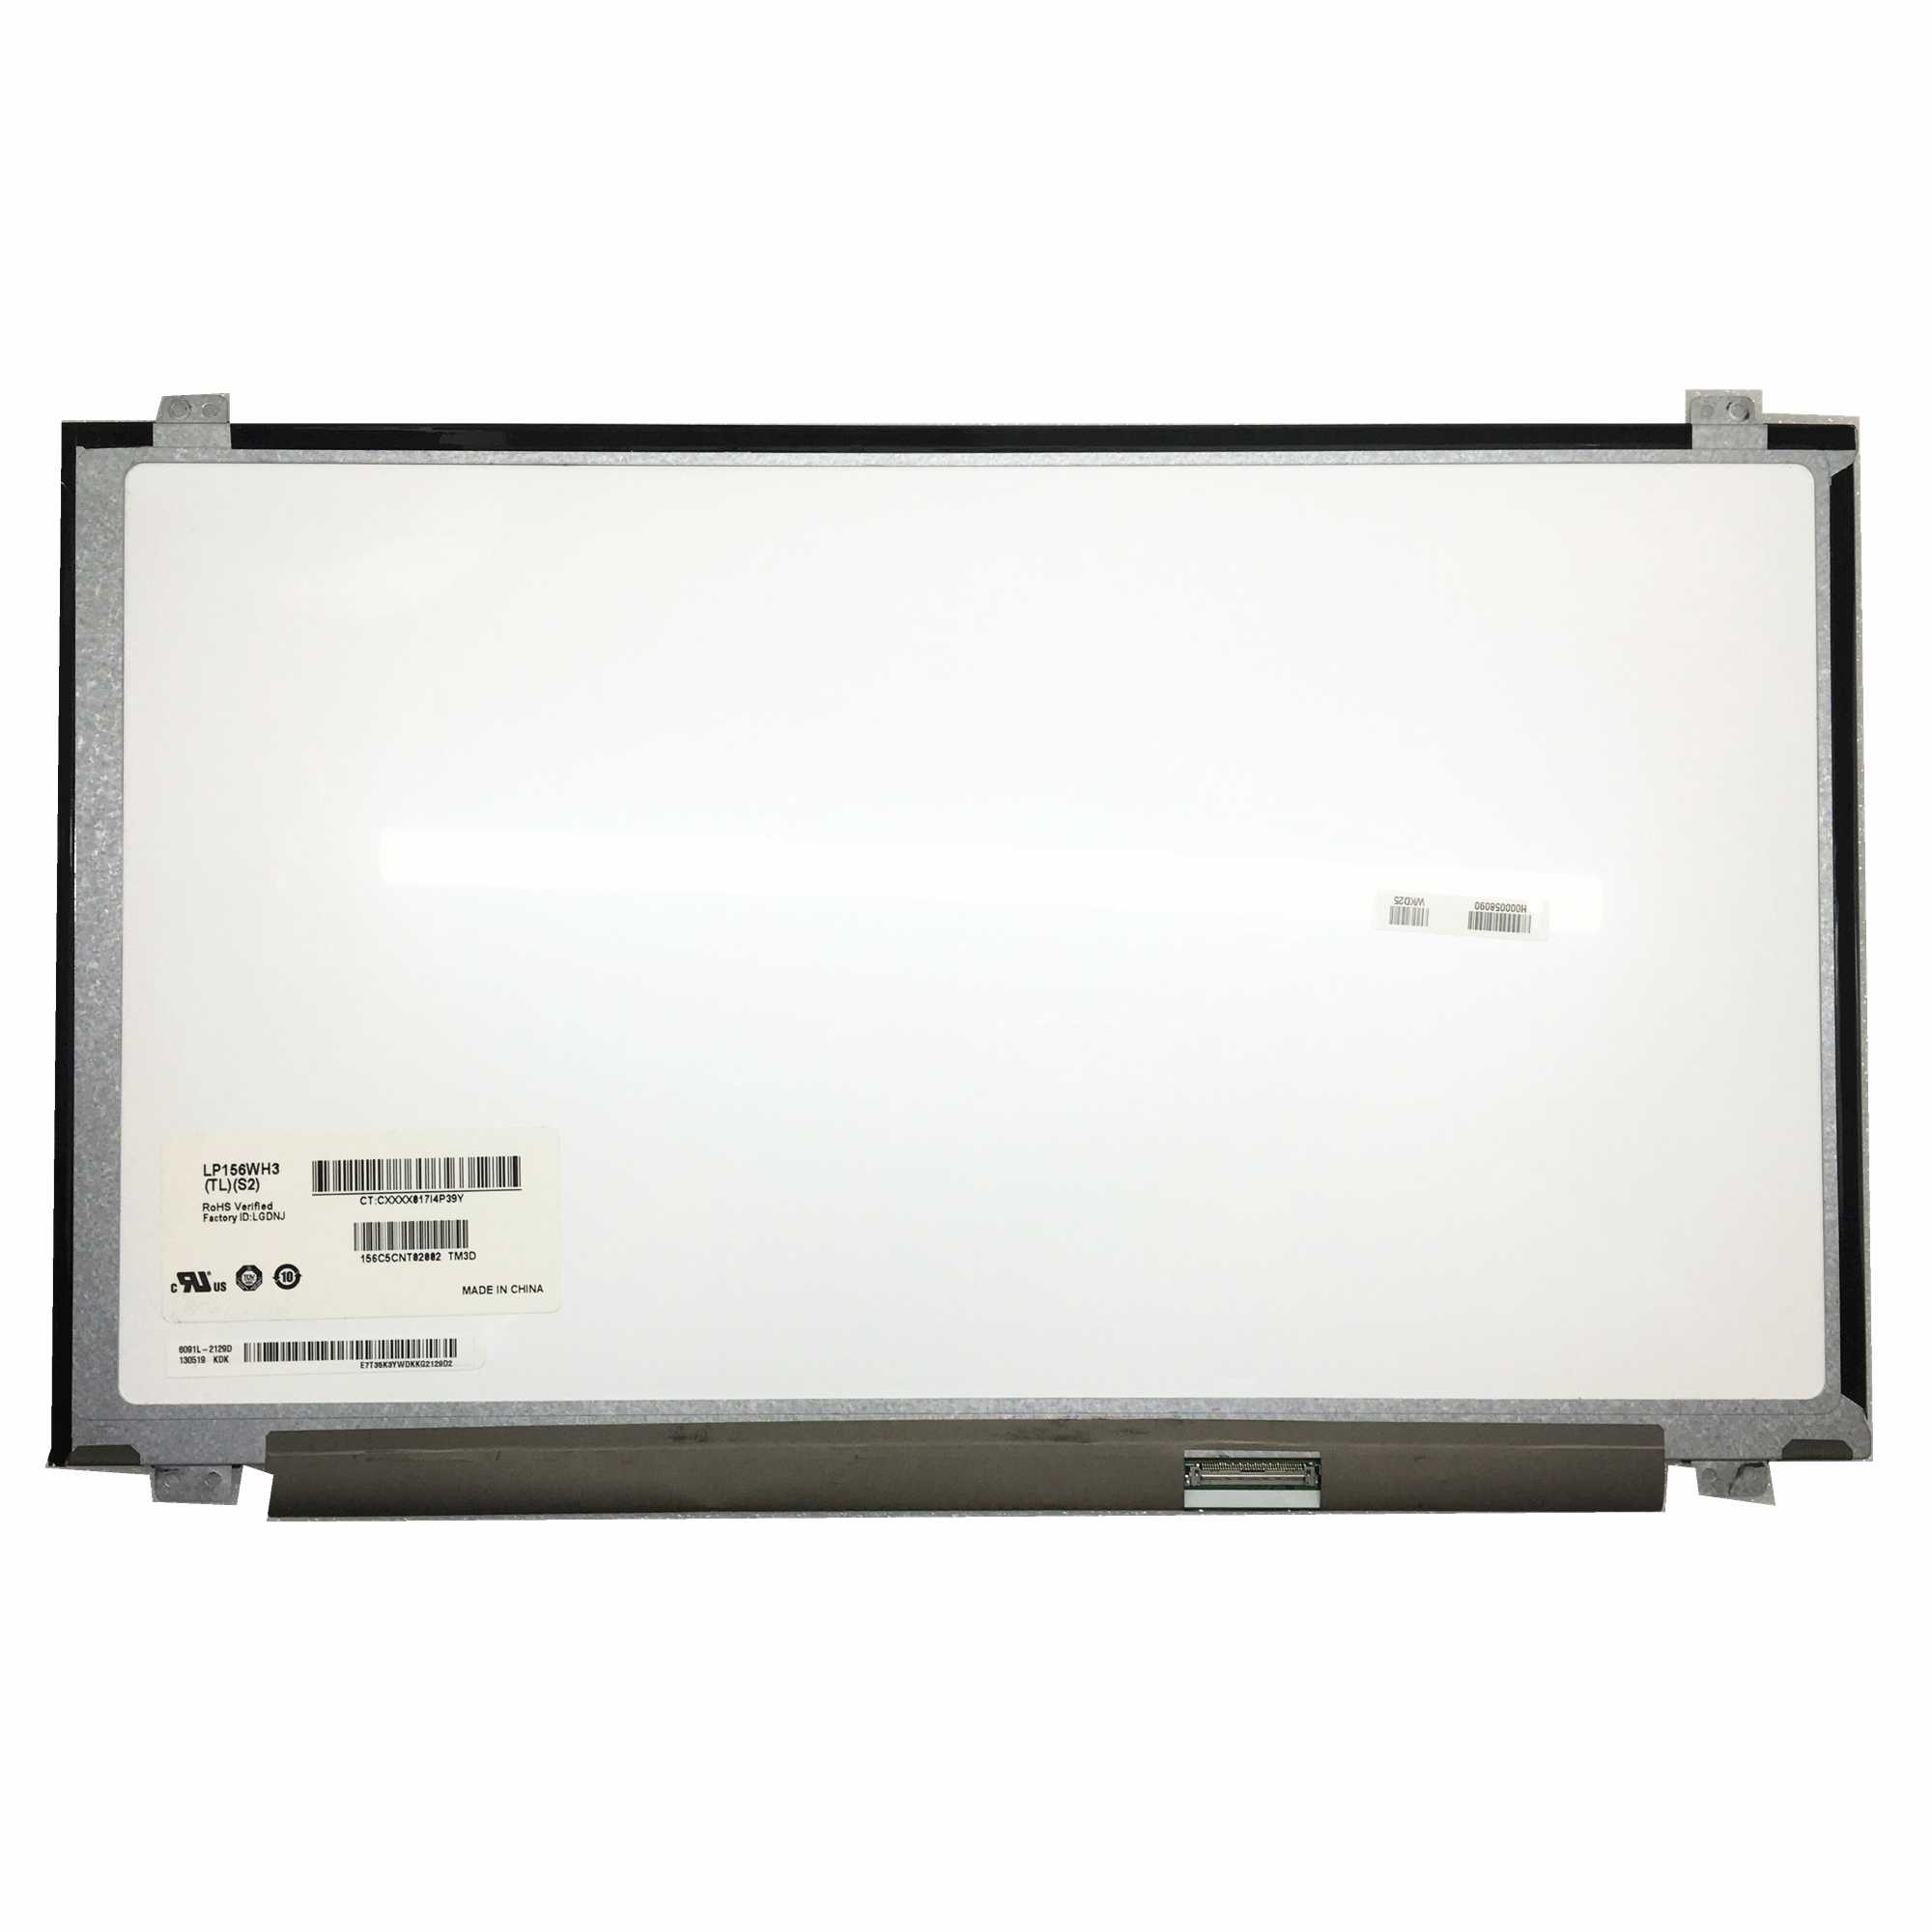 Free shipping LP156WH3 TLS2 LP156WH3 TLS2 TLS1 TLA2 TLA1 LP156WH3 TLT1 LP156WH3 TLE1 LP156WH3 TLB1 LP156WH3 TLAA 40 pins-in Laptop LCD Screen from Computer & Office    1